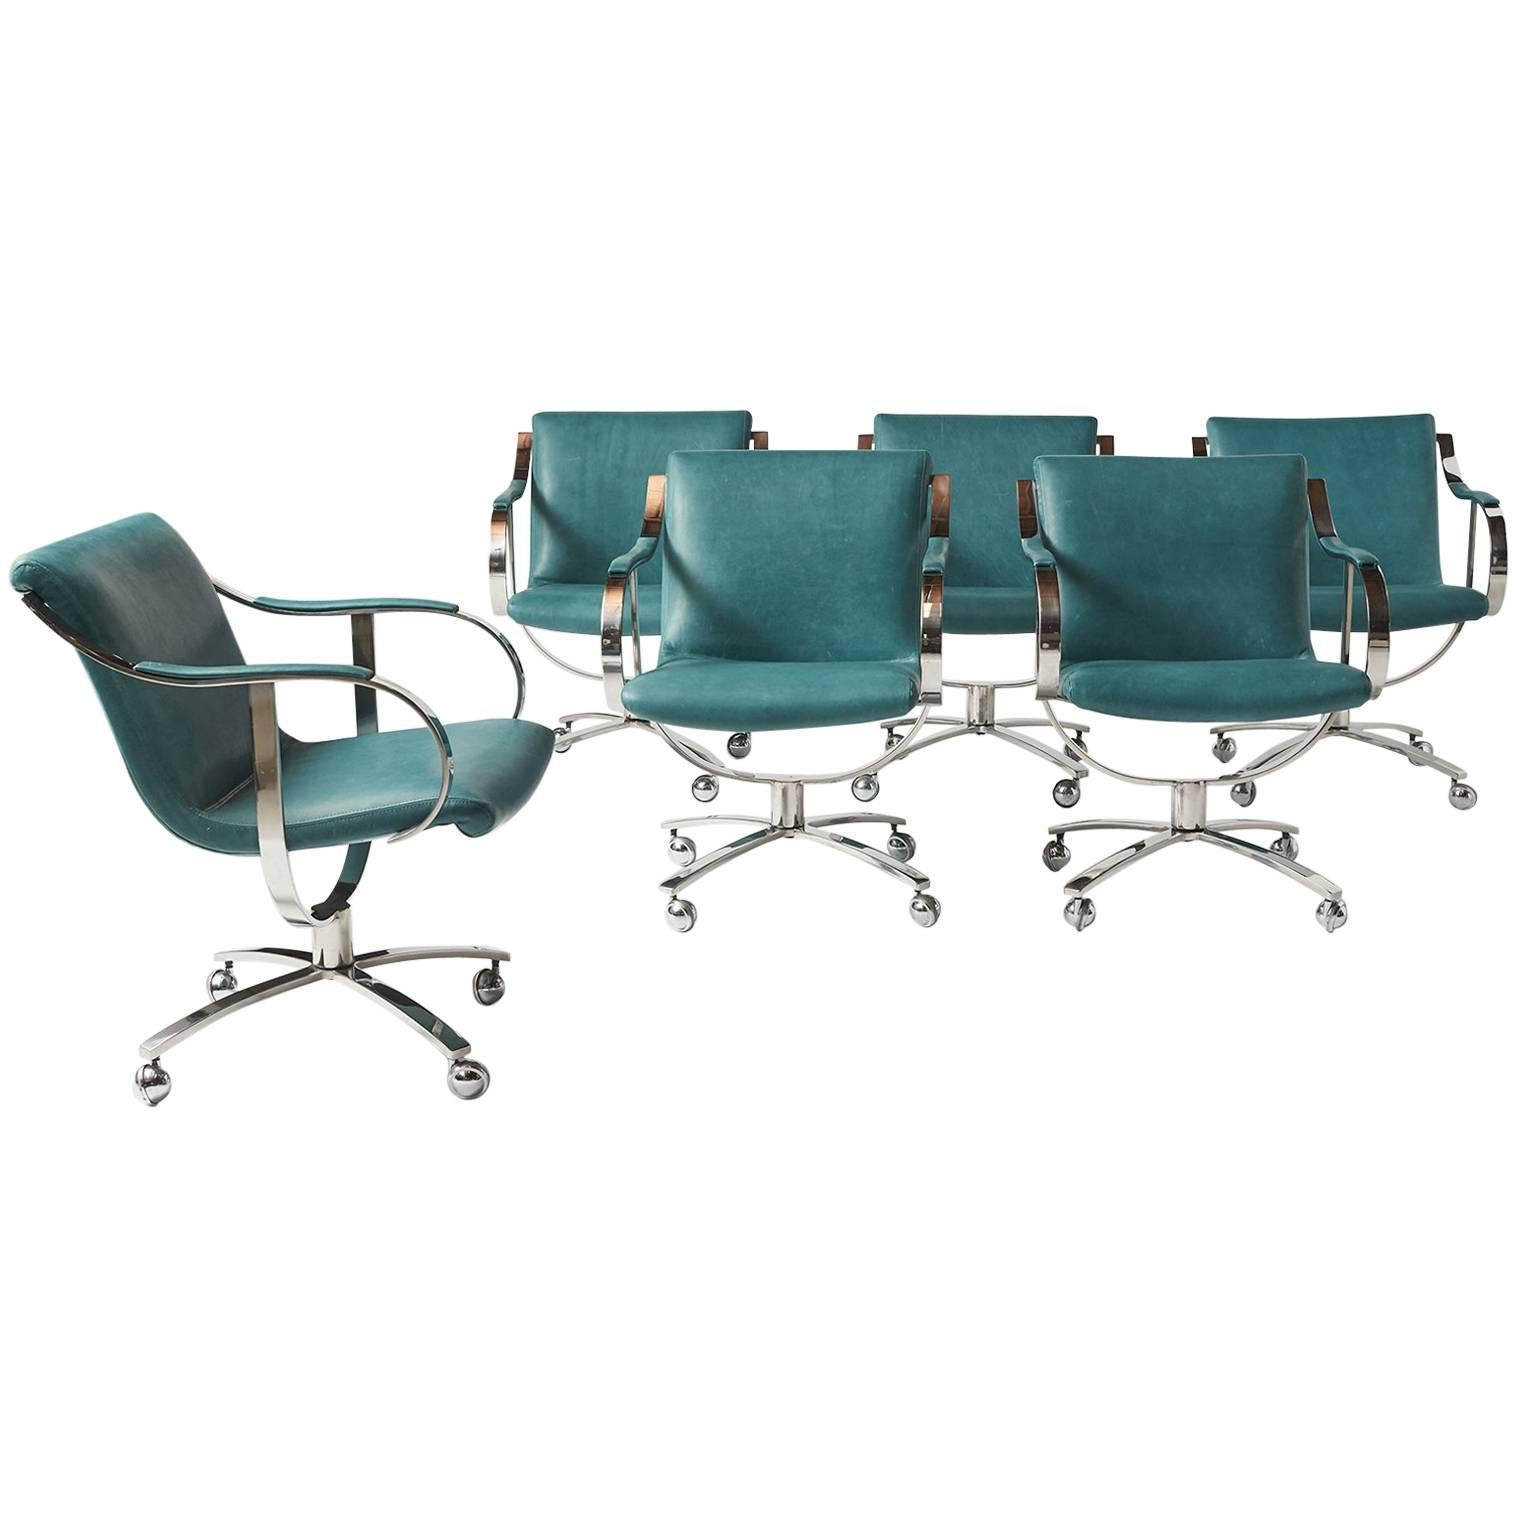 Swivel Chairs by Gardner Leaver for Steelcase